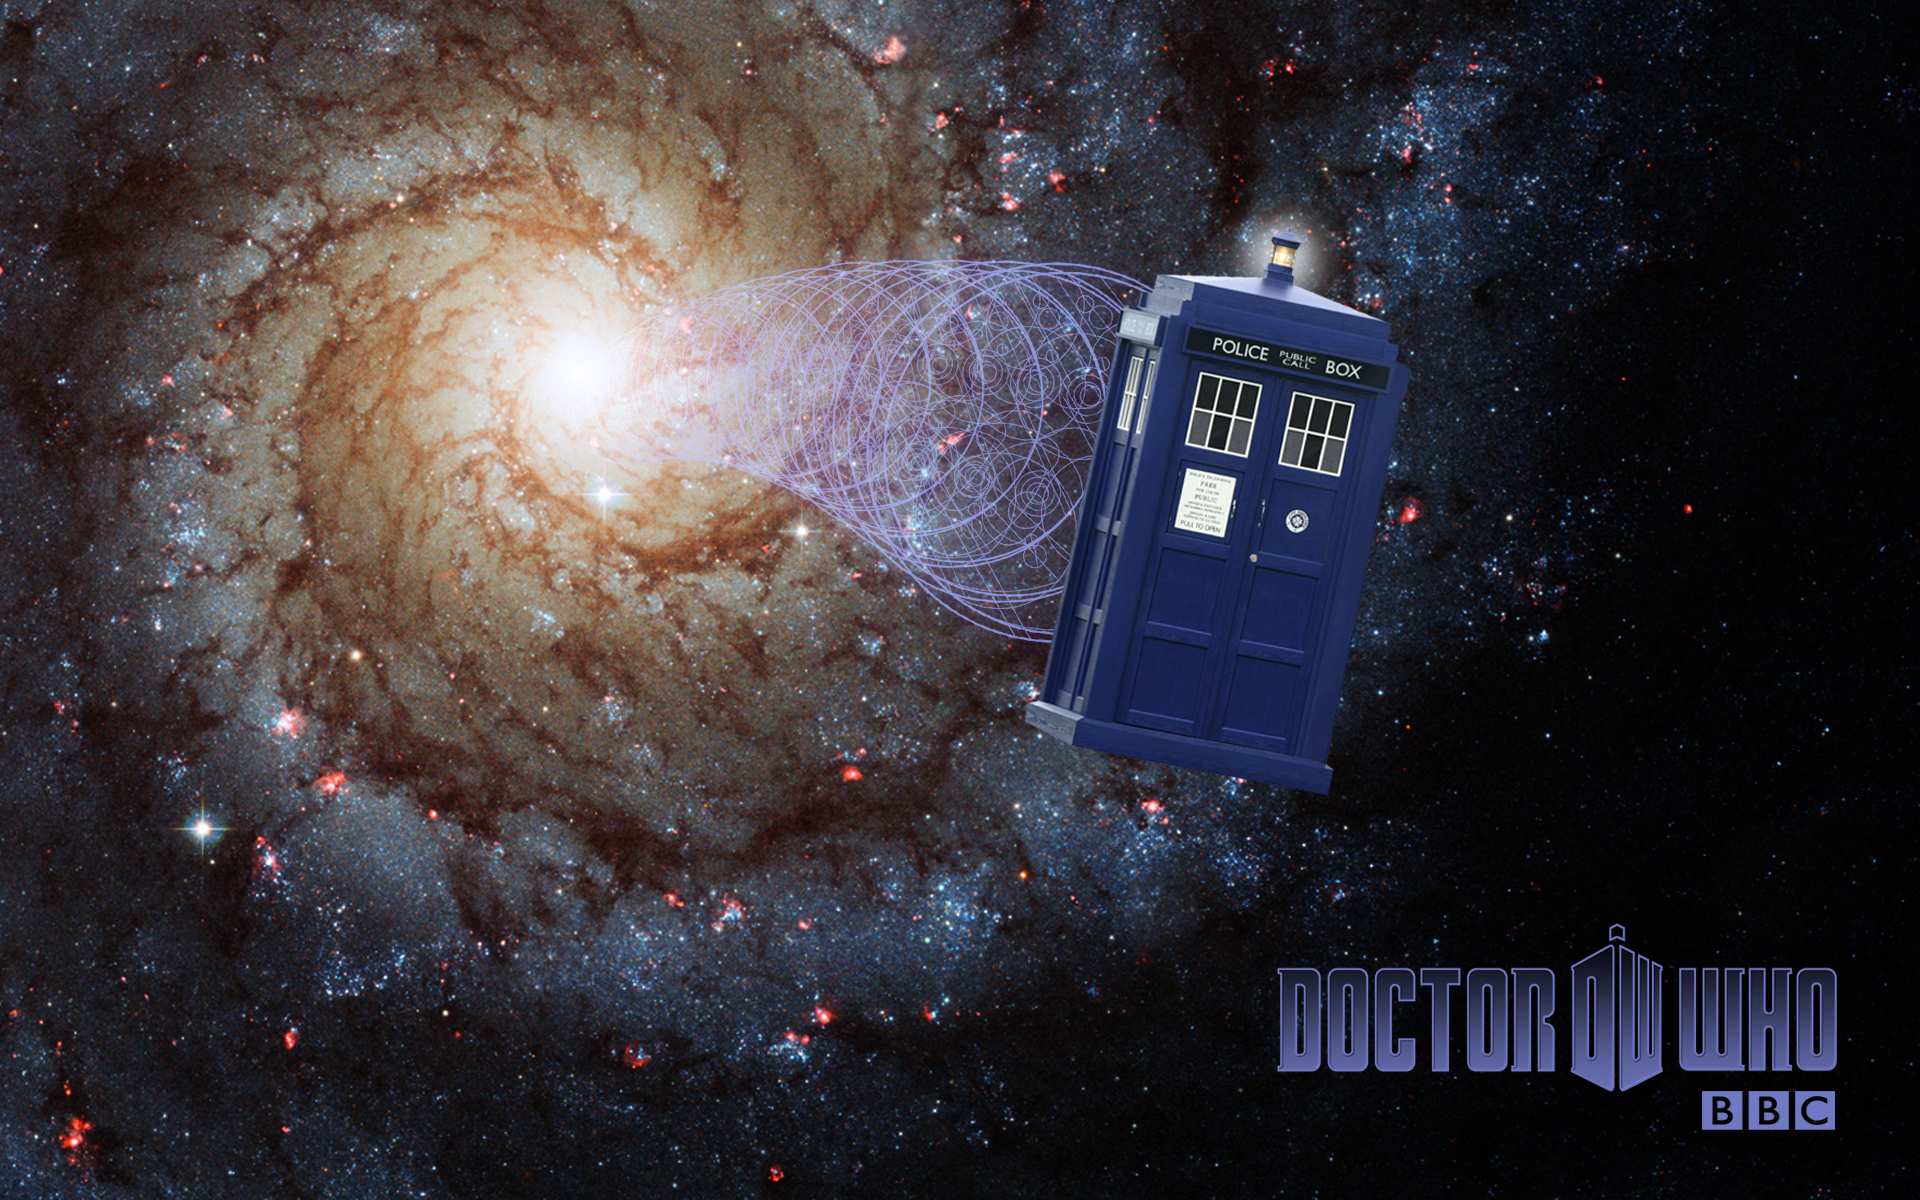 Download Doctor Who Wallpapers Tardis pictures in high definition or 1920x1200